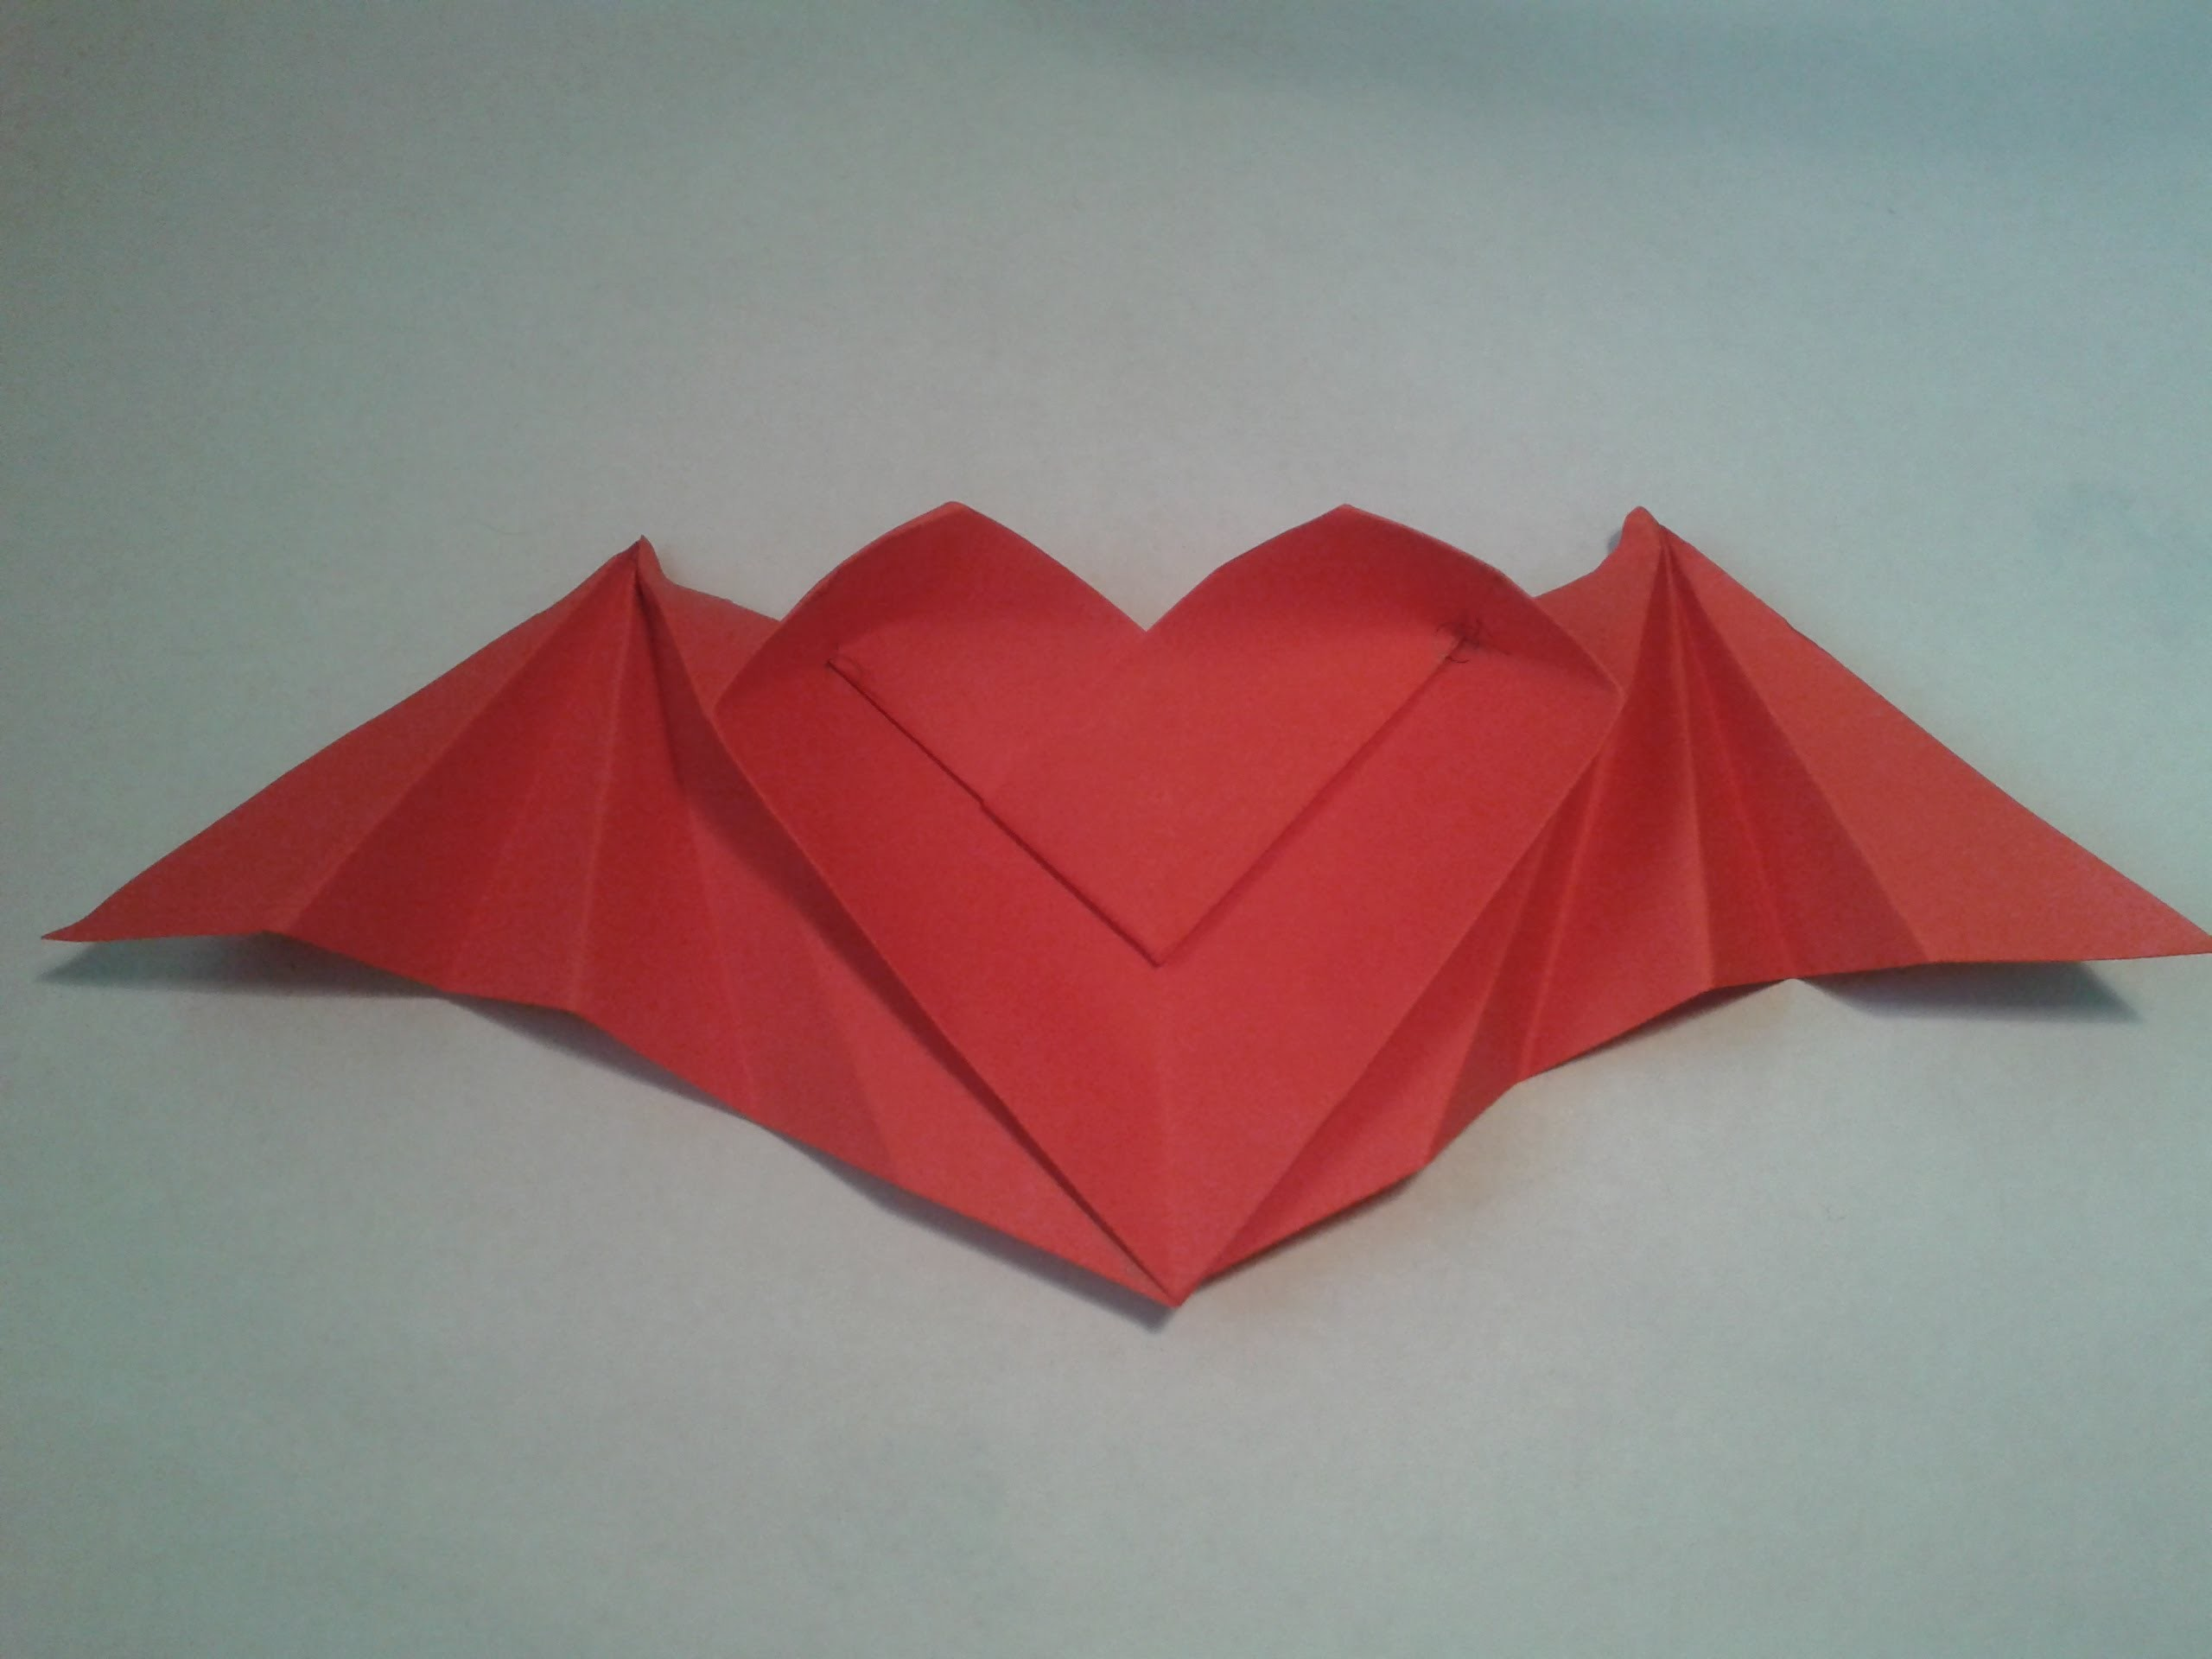 Origami - How to make a winged heart (origami instructions)